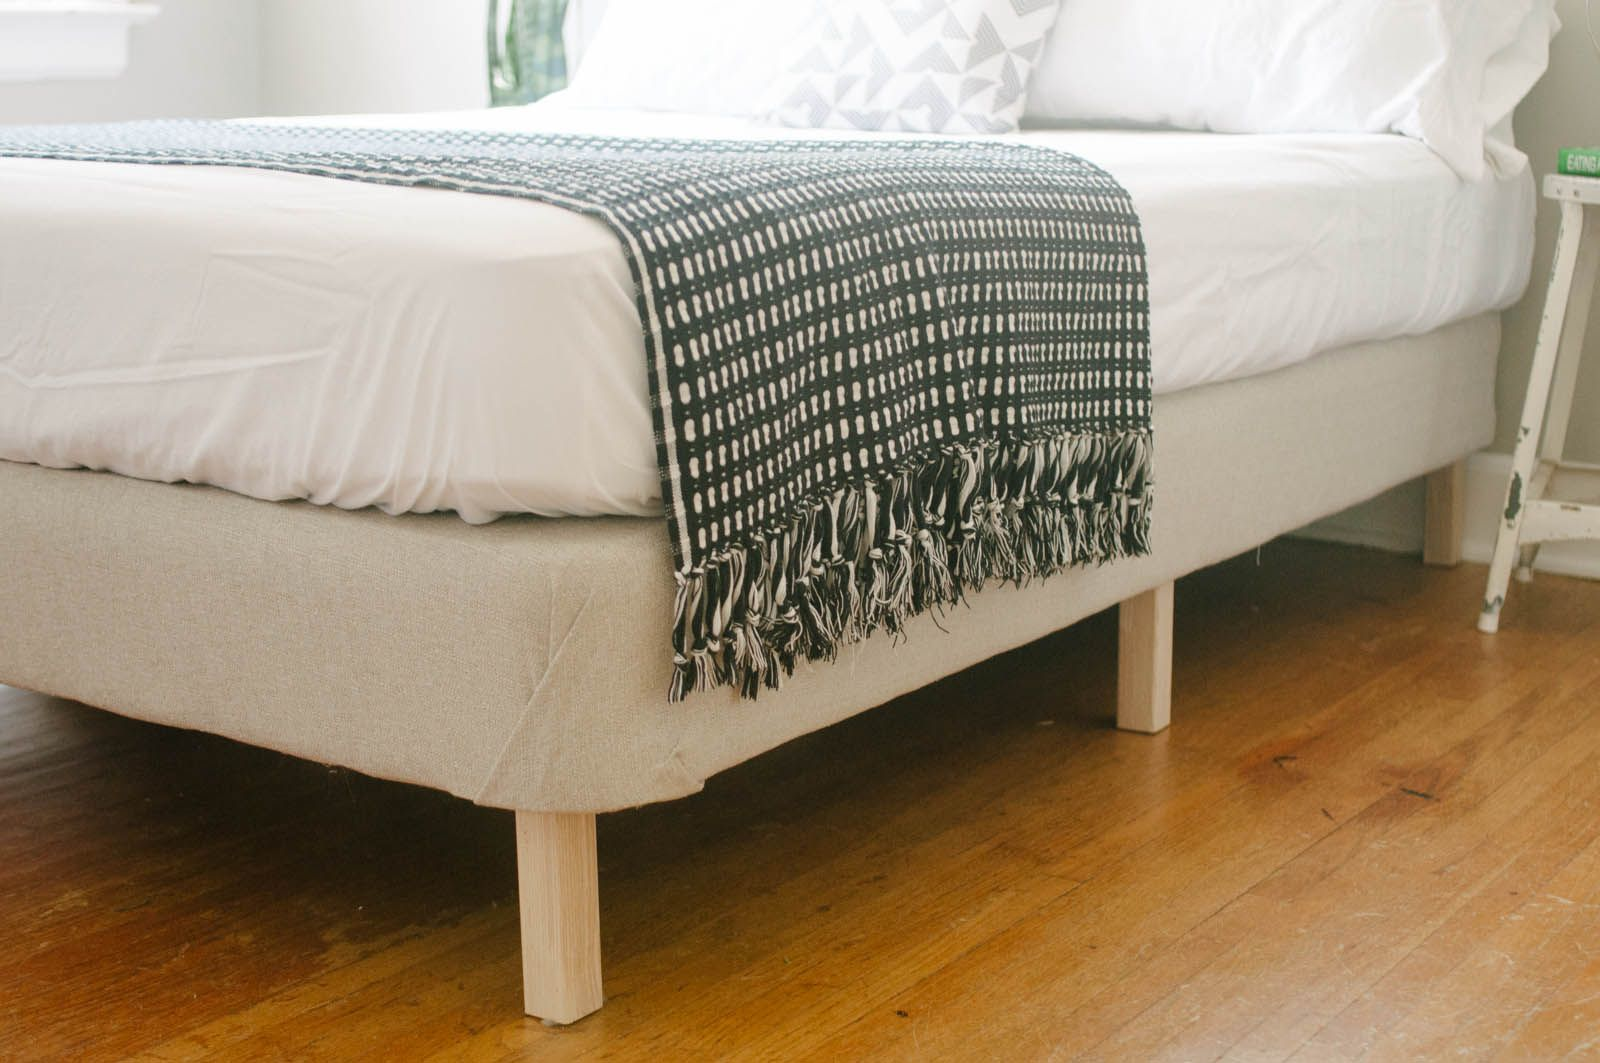 Simple Is Better A Diy Modern Bed Diy Modern Bed Diy Bed Frame